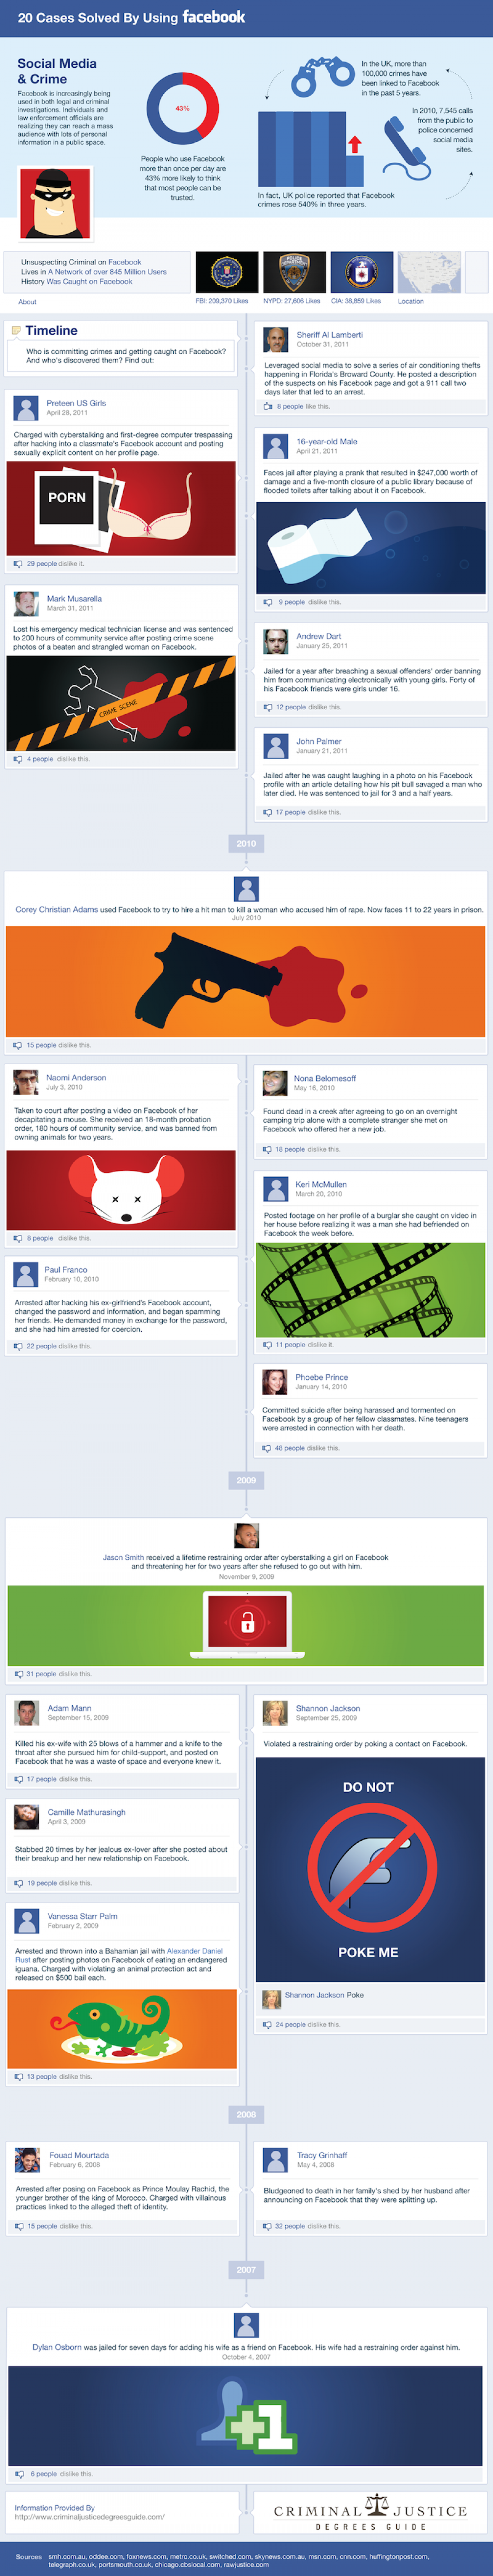 20 Cases Solved By Using Facebook Infographic